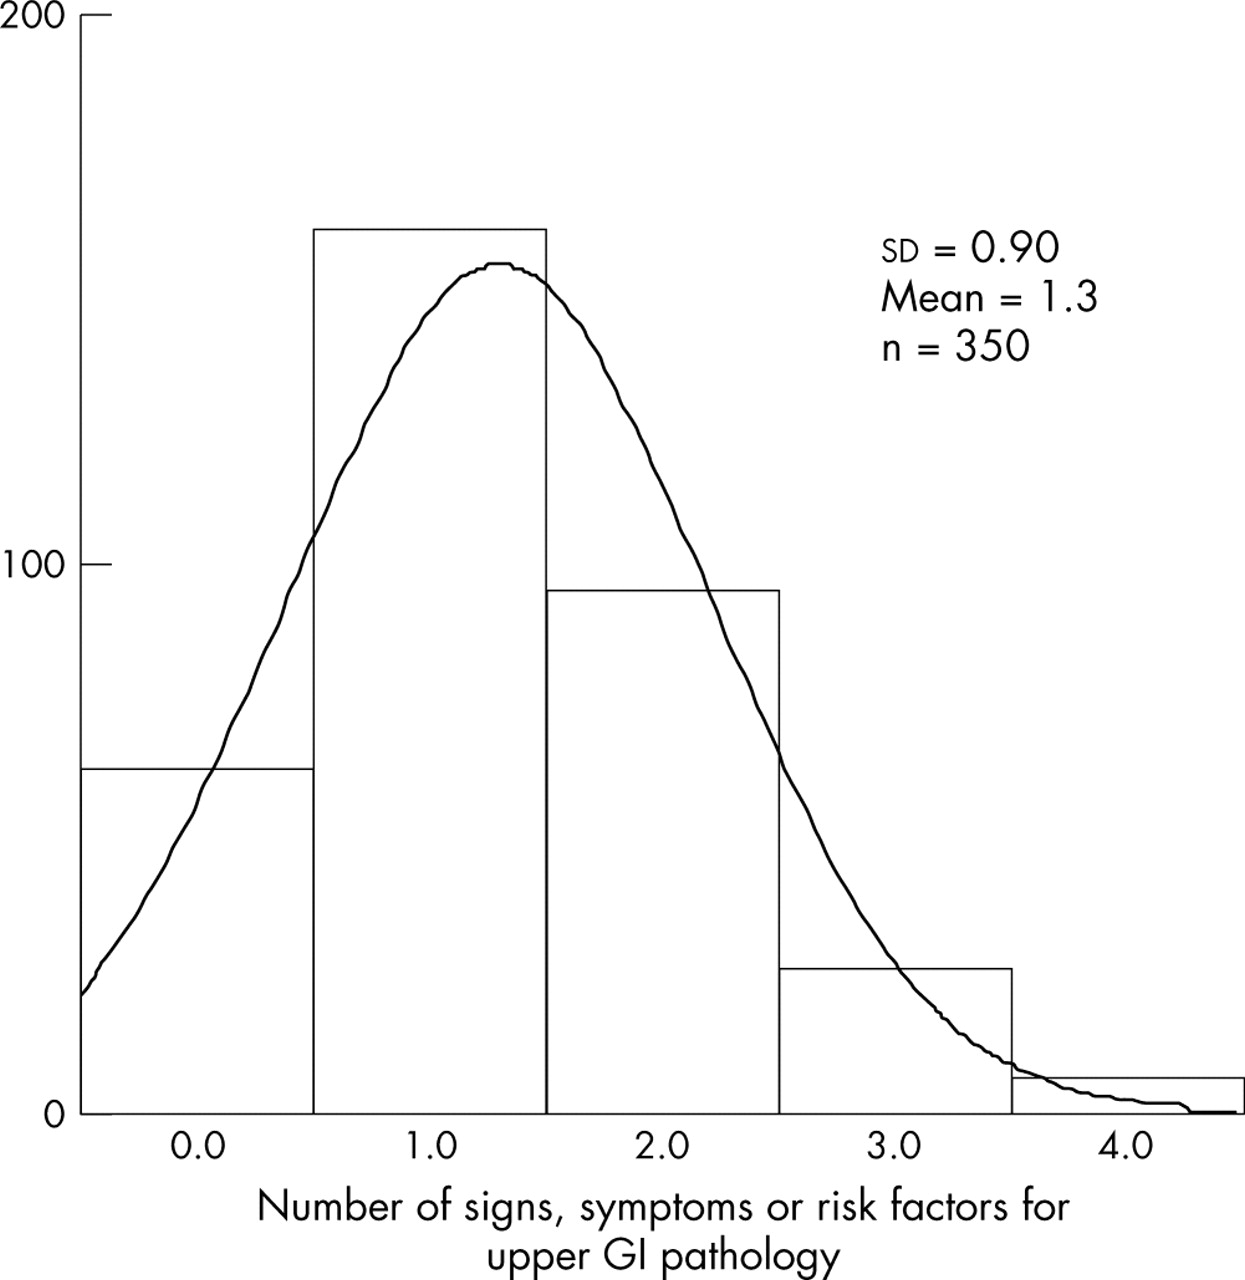 measuring the quality of referral letters about patients with upper